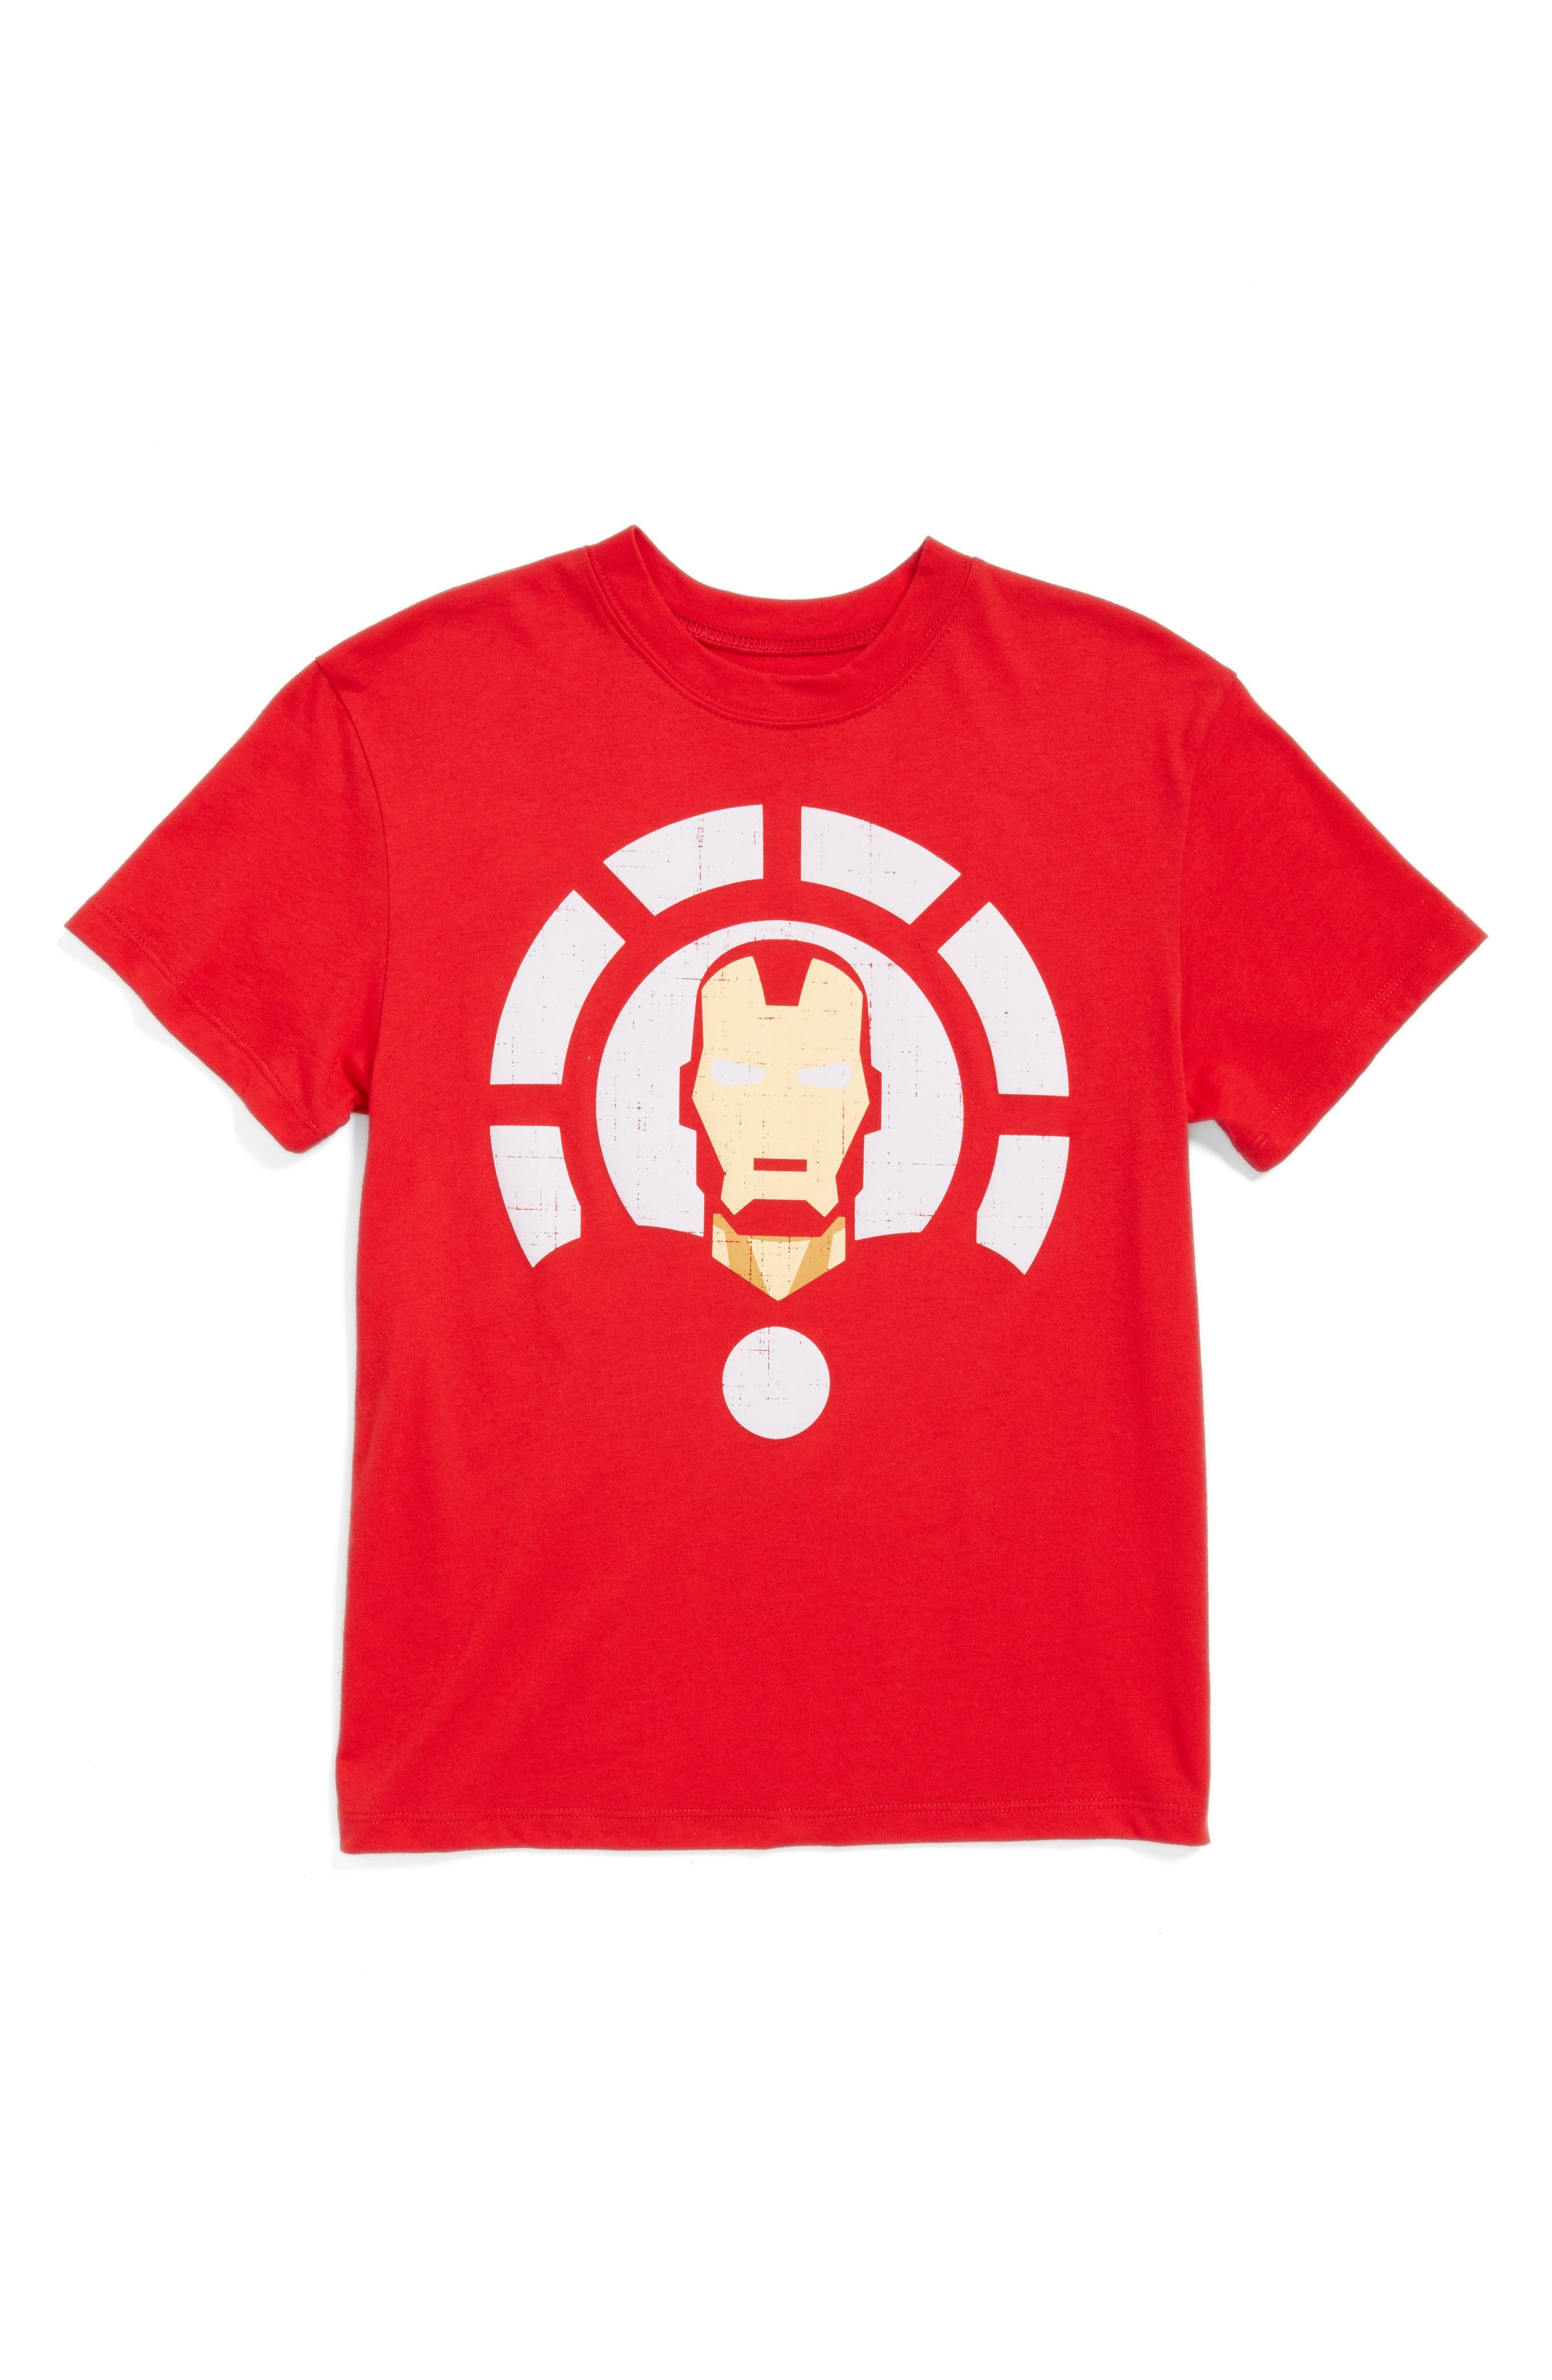 Main Image - Mighty Fine Iron Man Graphic T-Shirt (Big Boys)